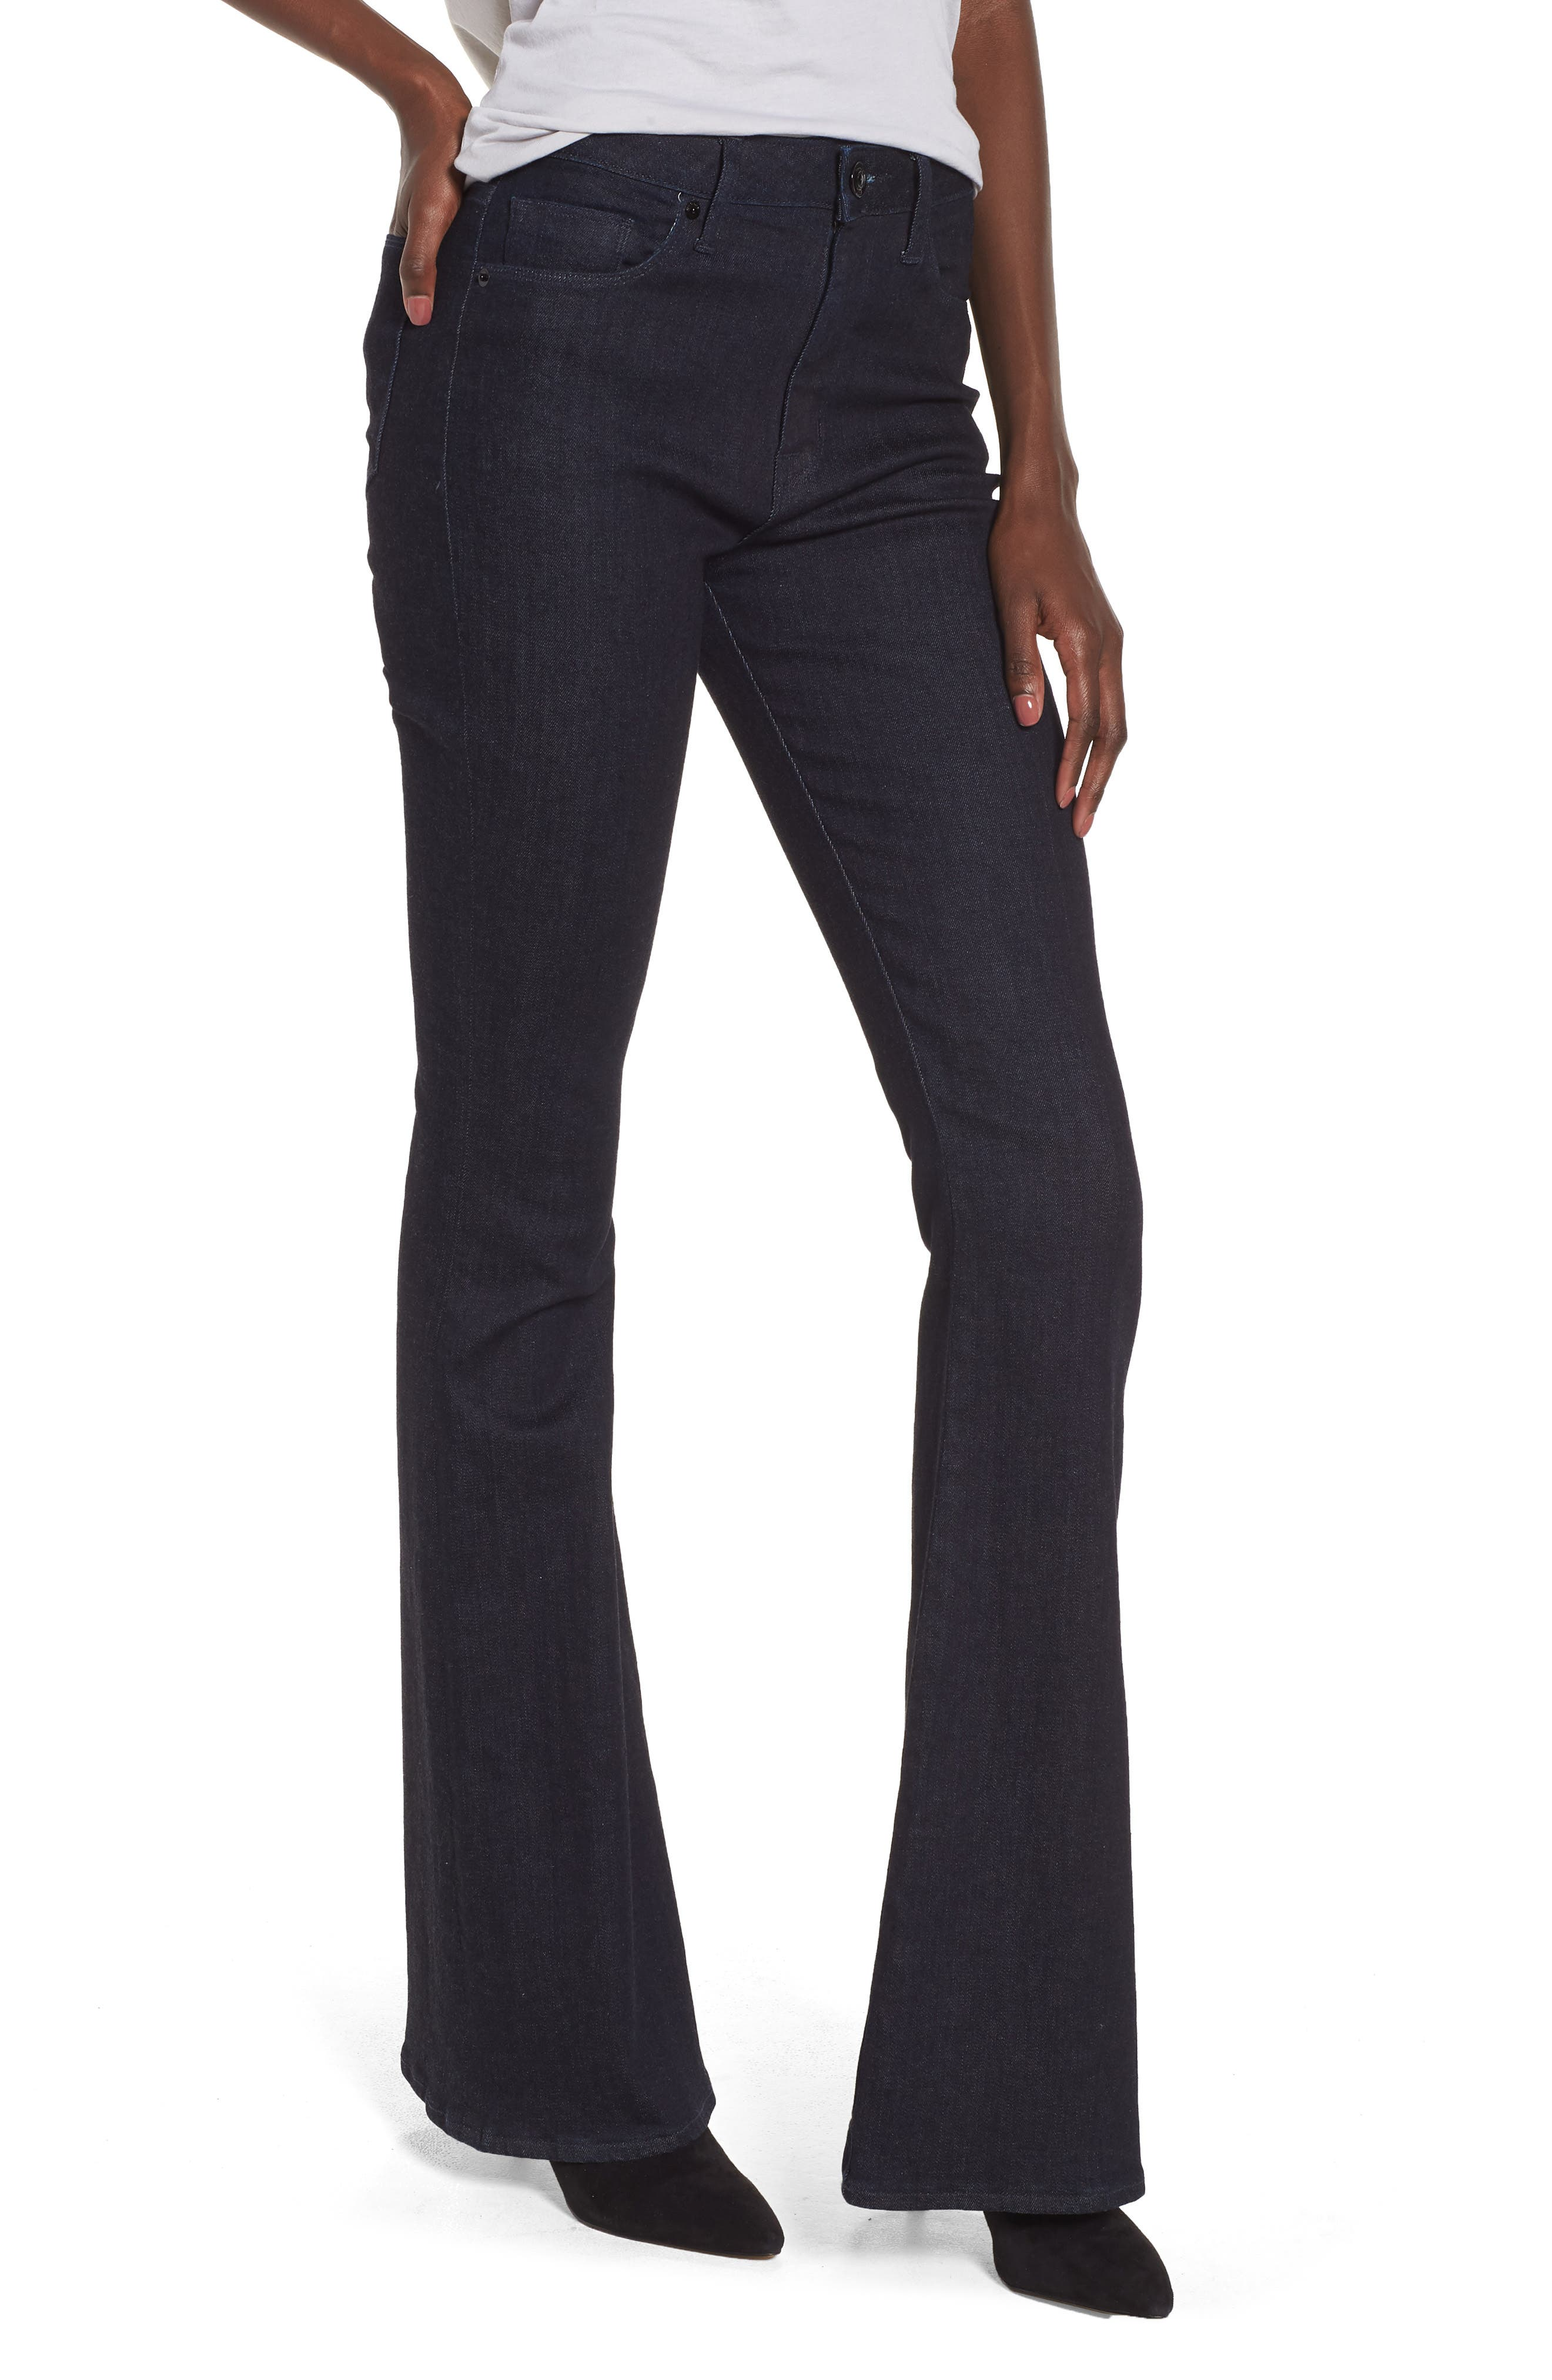 Holly High Waist Flare Jeans,                             Main thumbnail 1, color,                             Infuse